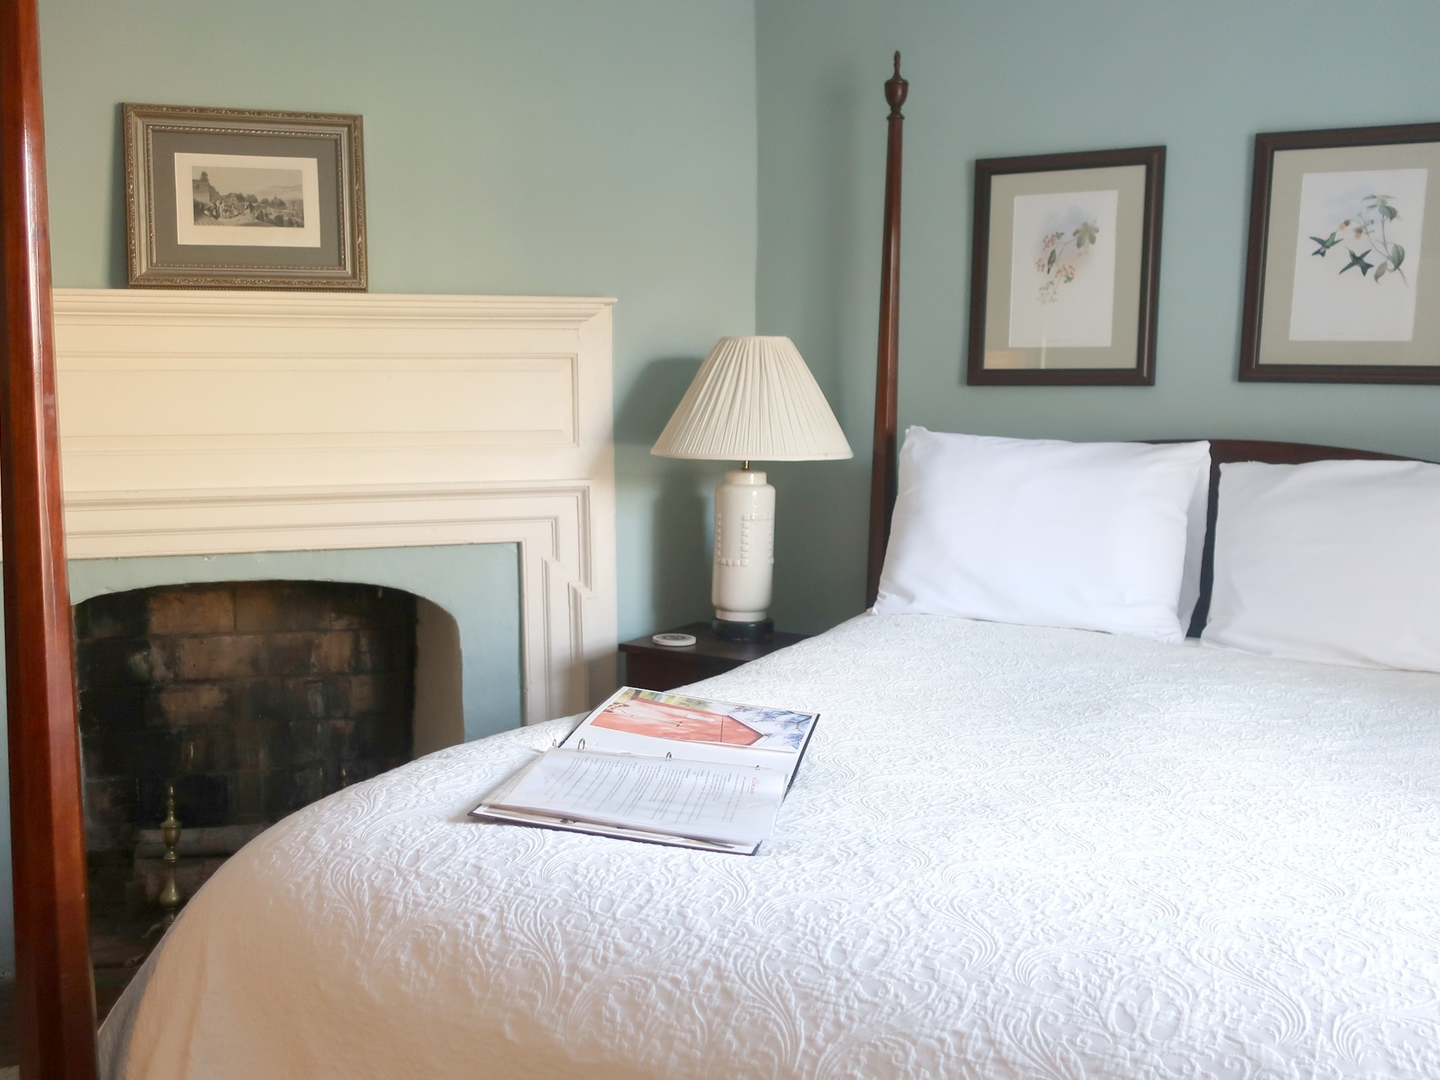 A bedroom with a large bed sitting in a room at Inn at Glencairn.